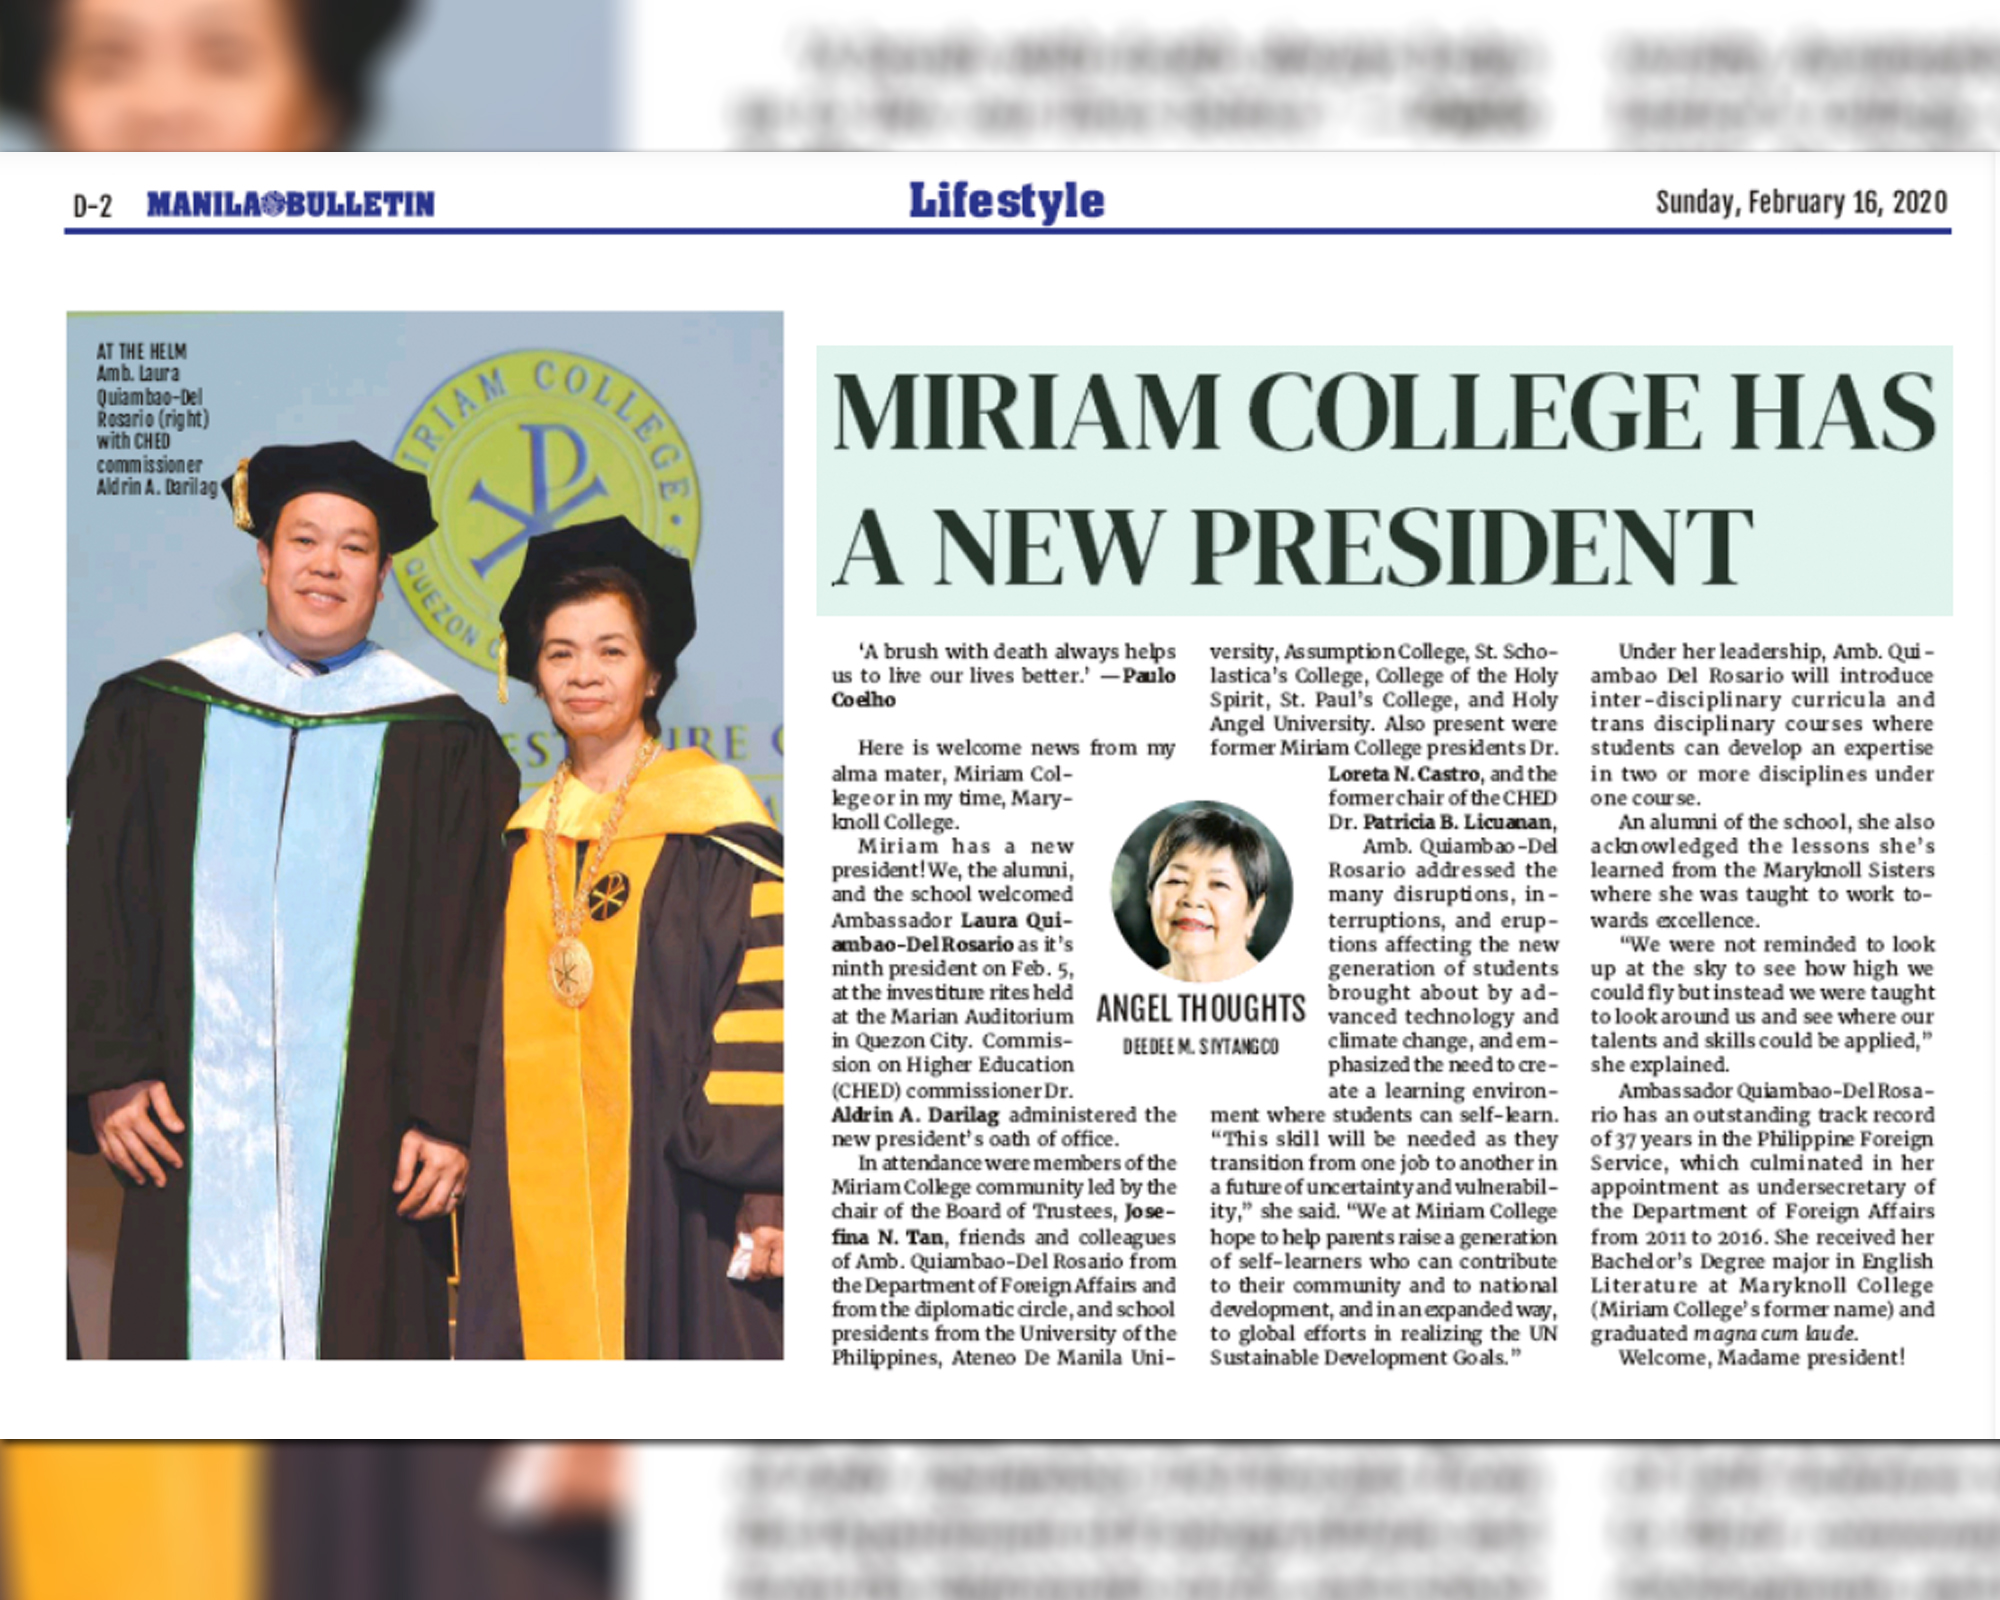 Miriam College has a new President by Deedee M. Siytangco  |  Manila Bulletin